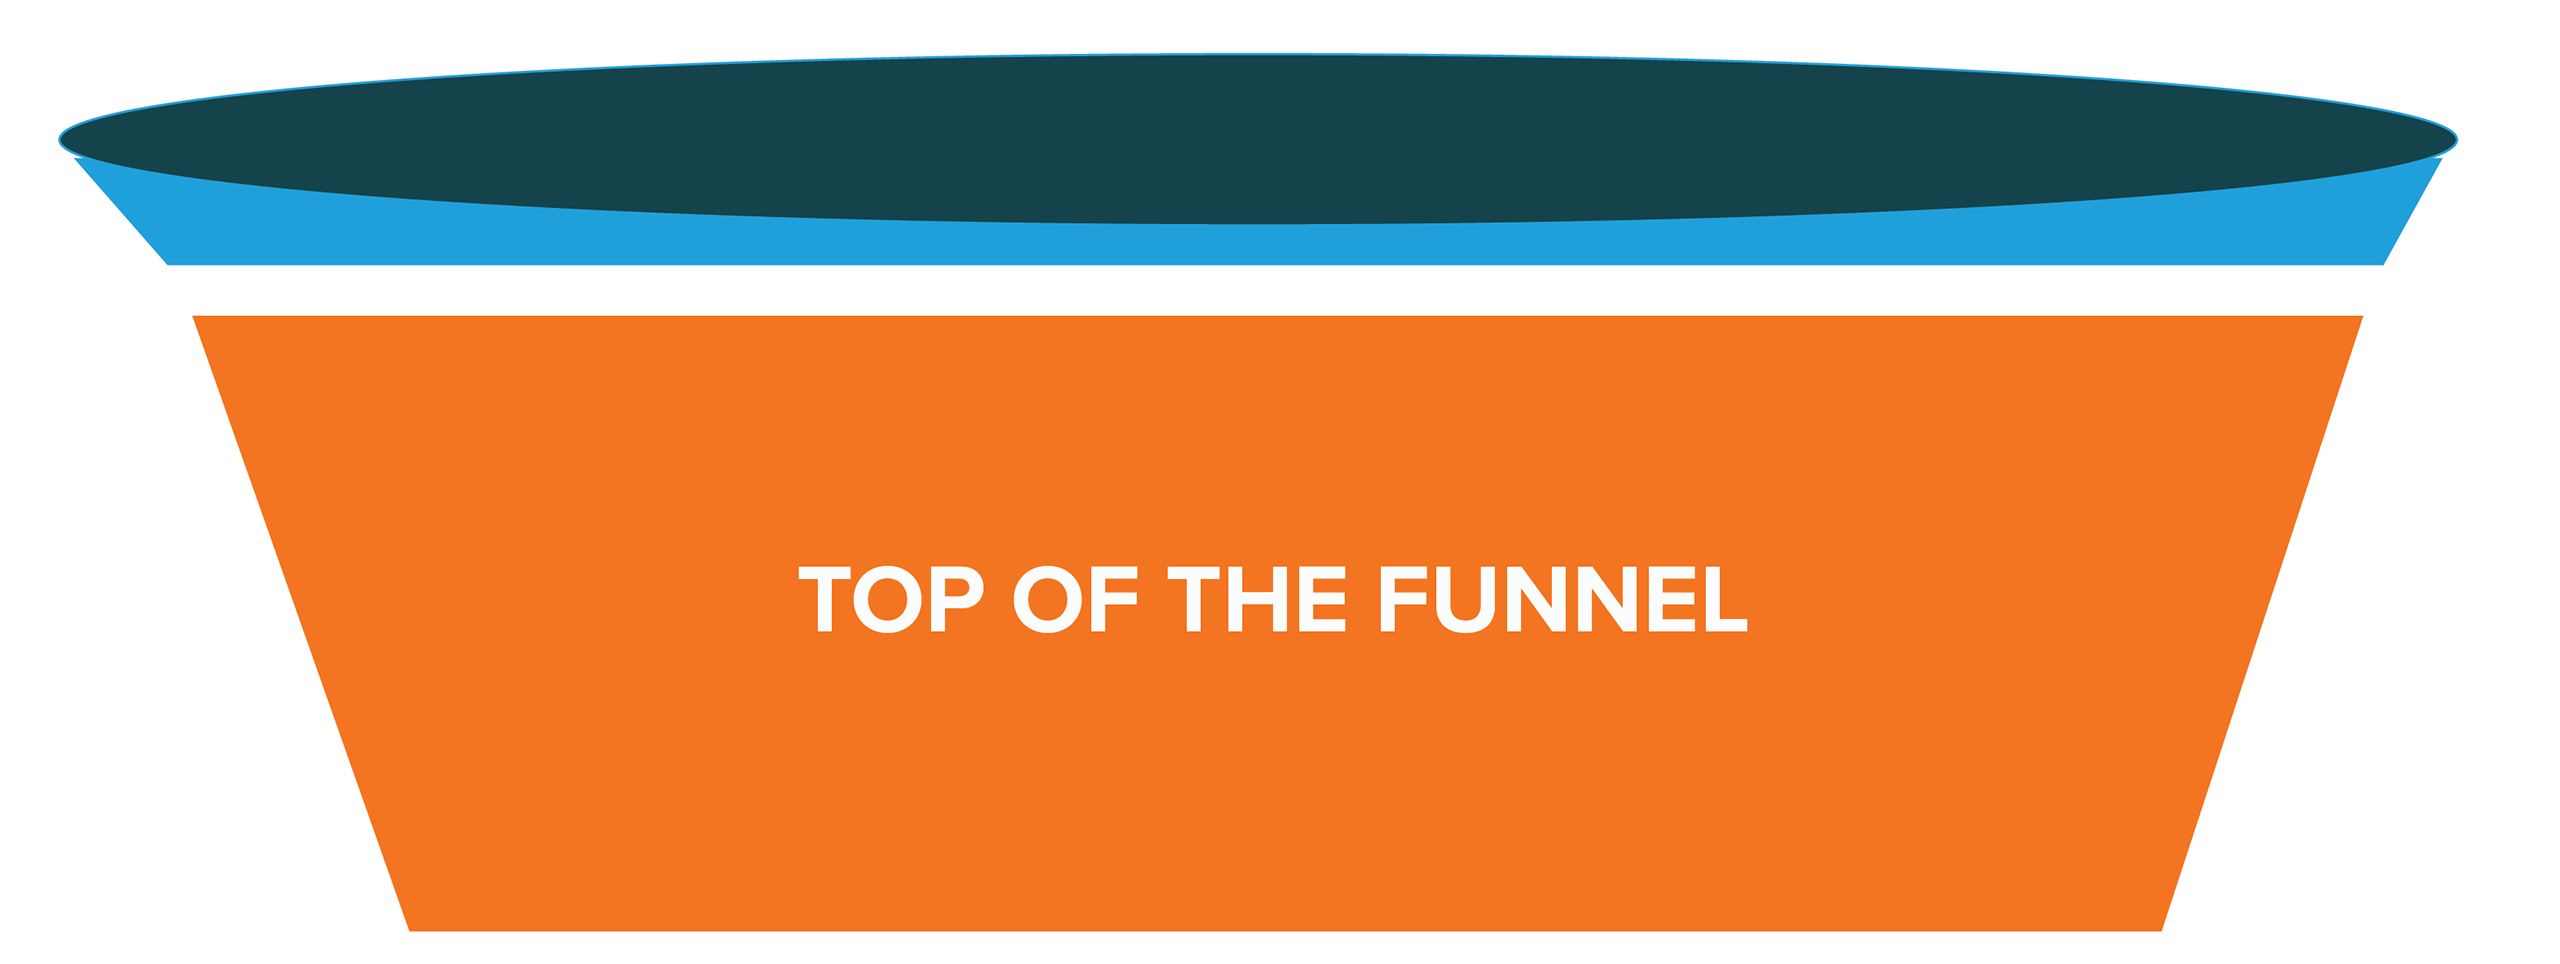 finance marketing - top of the funnel